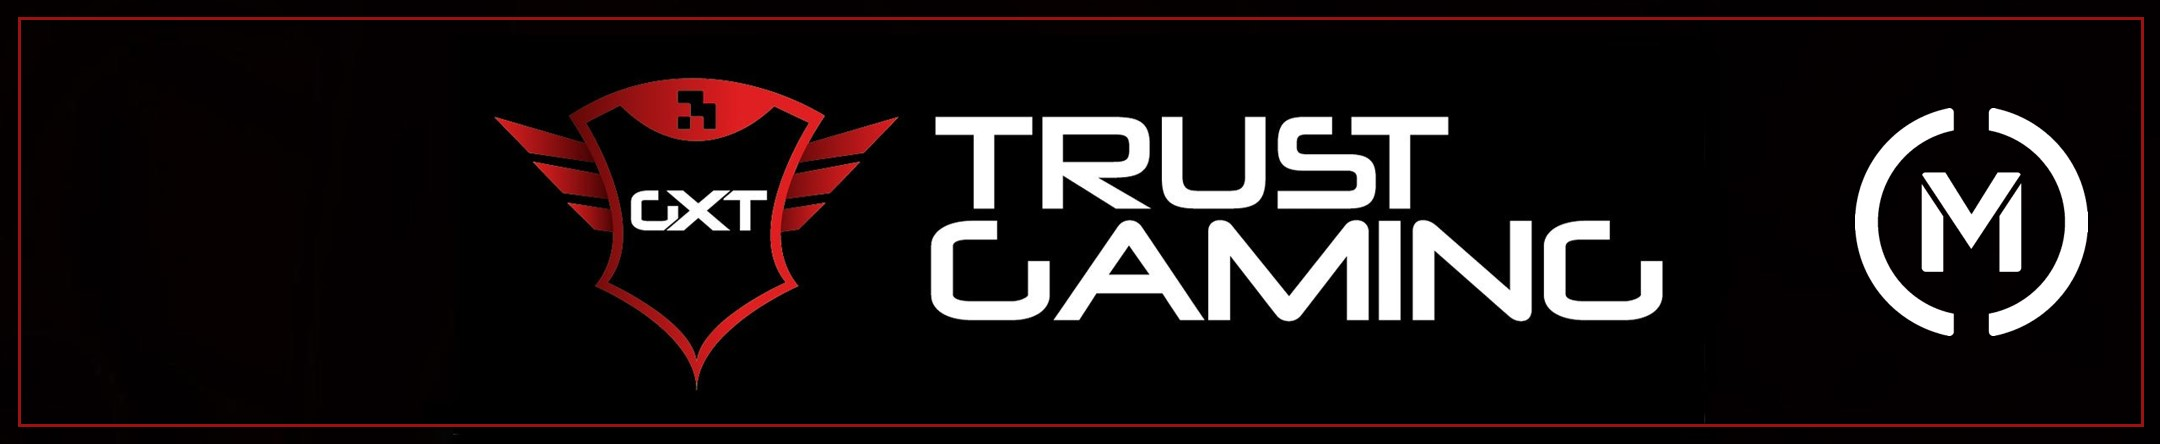 Trust PC Gaming Banner